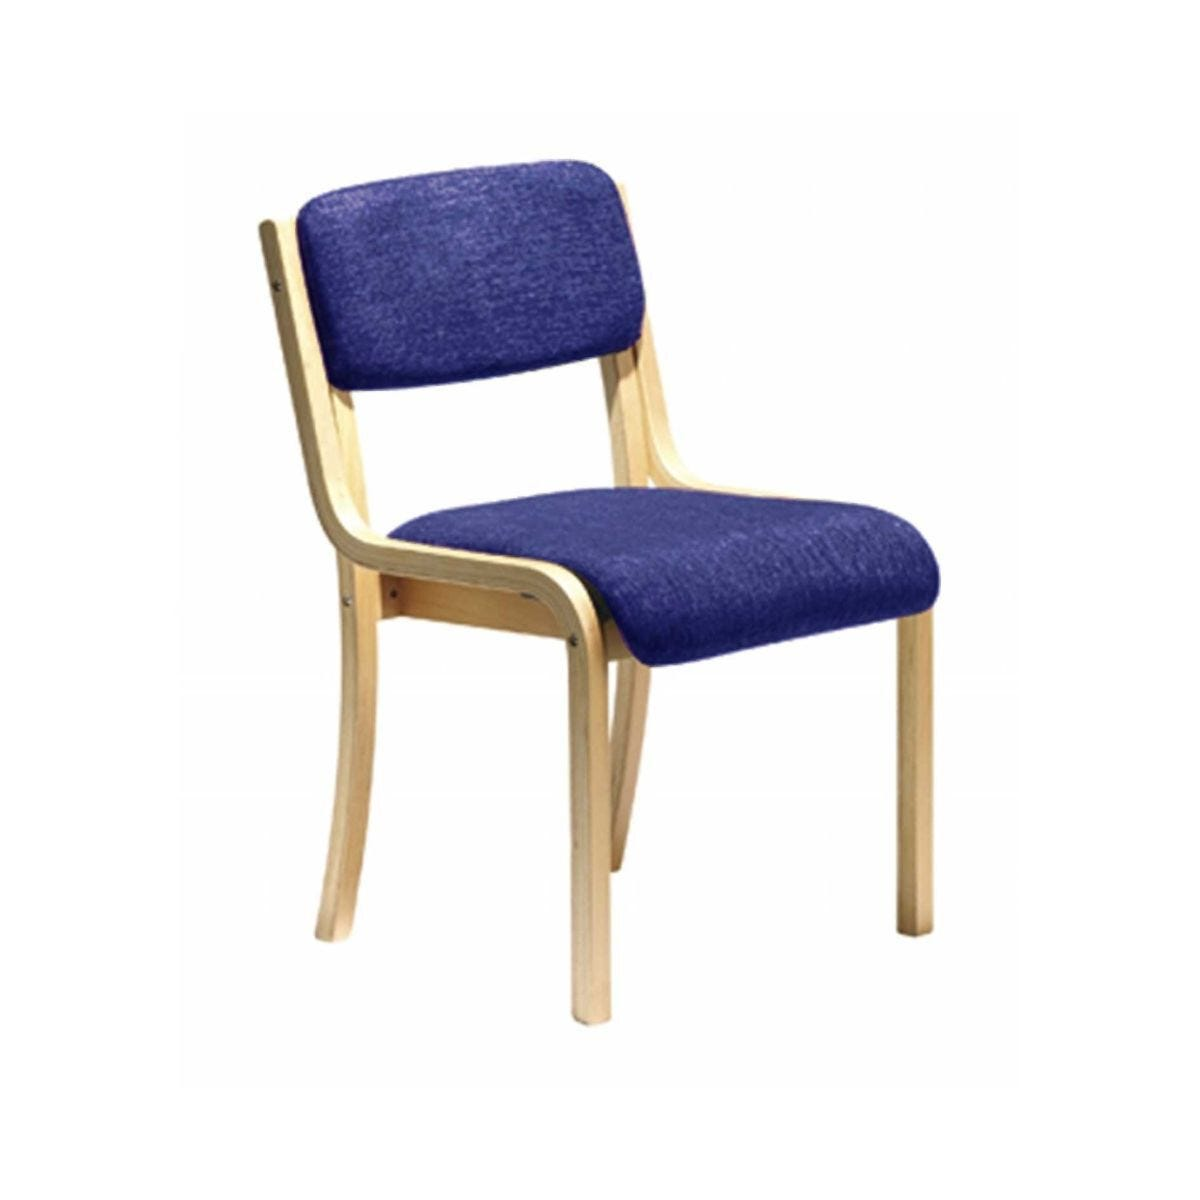 Wood Framed Conference Chair without Arms Blue Upholstered